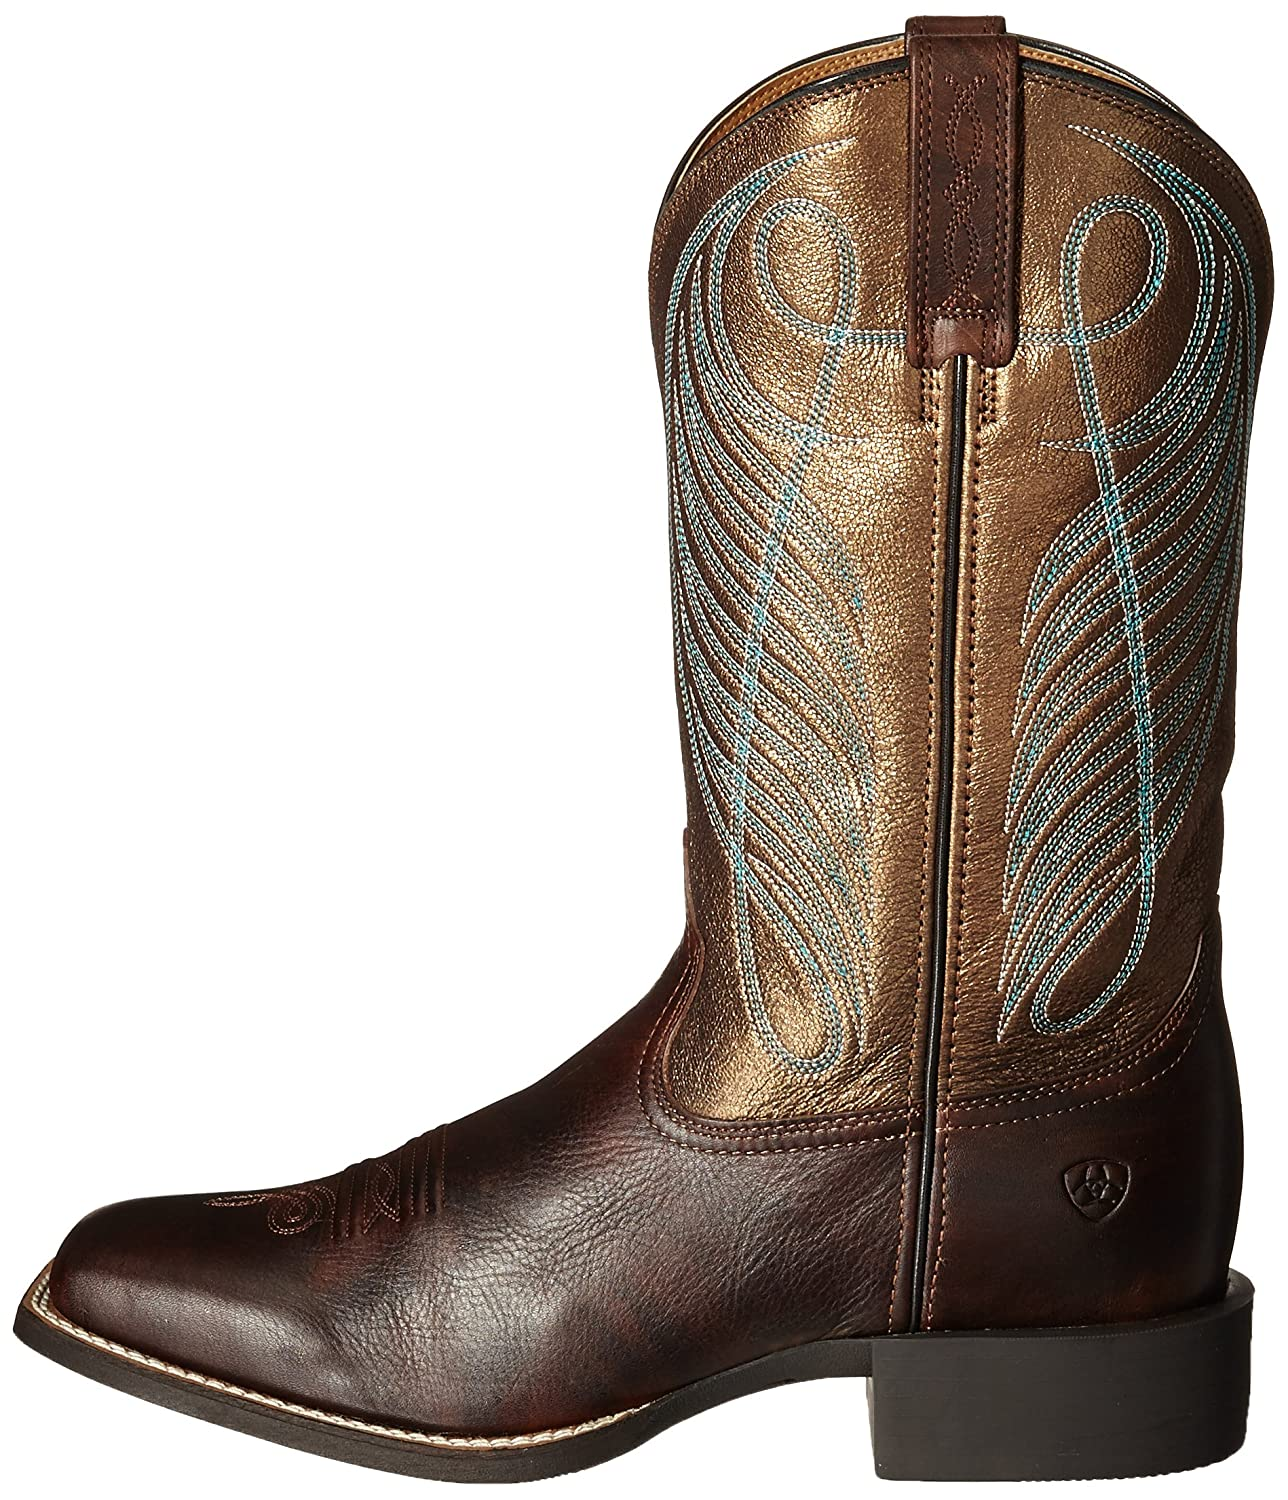 84e4788d0d5 ARIAT Women's Round Up Wide Square Toe Western Cowboy Boot